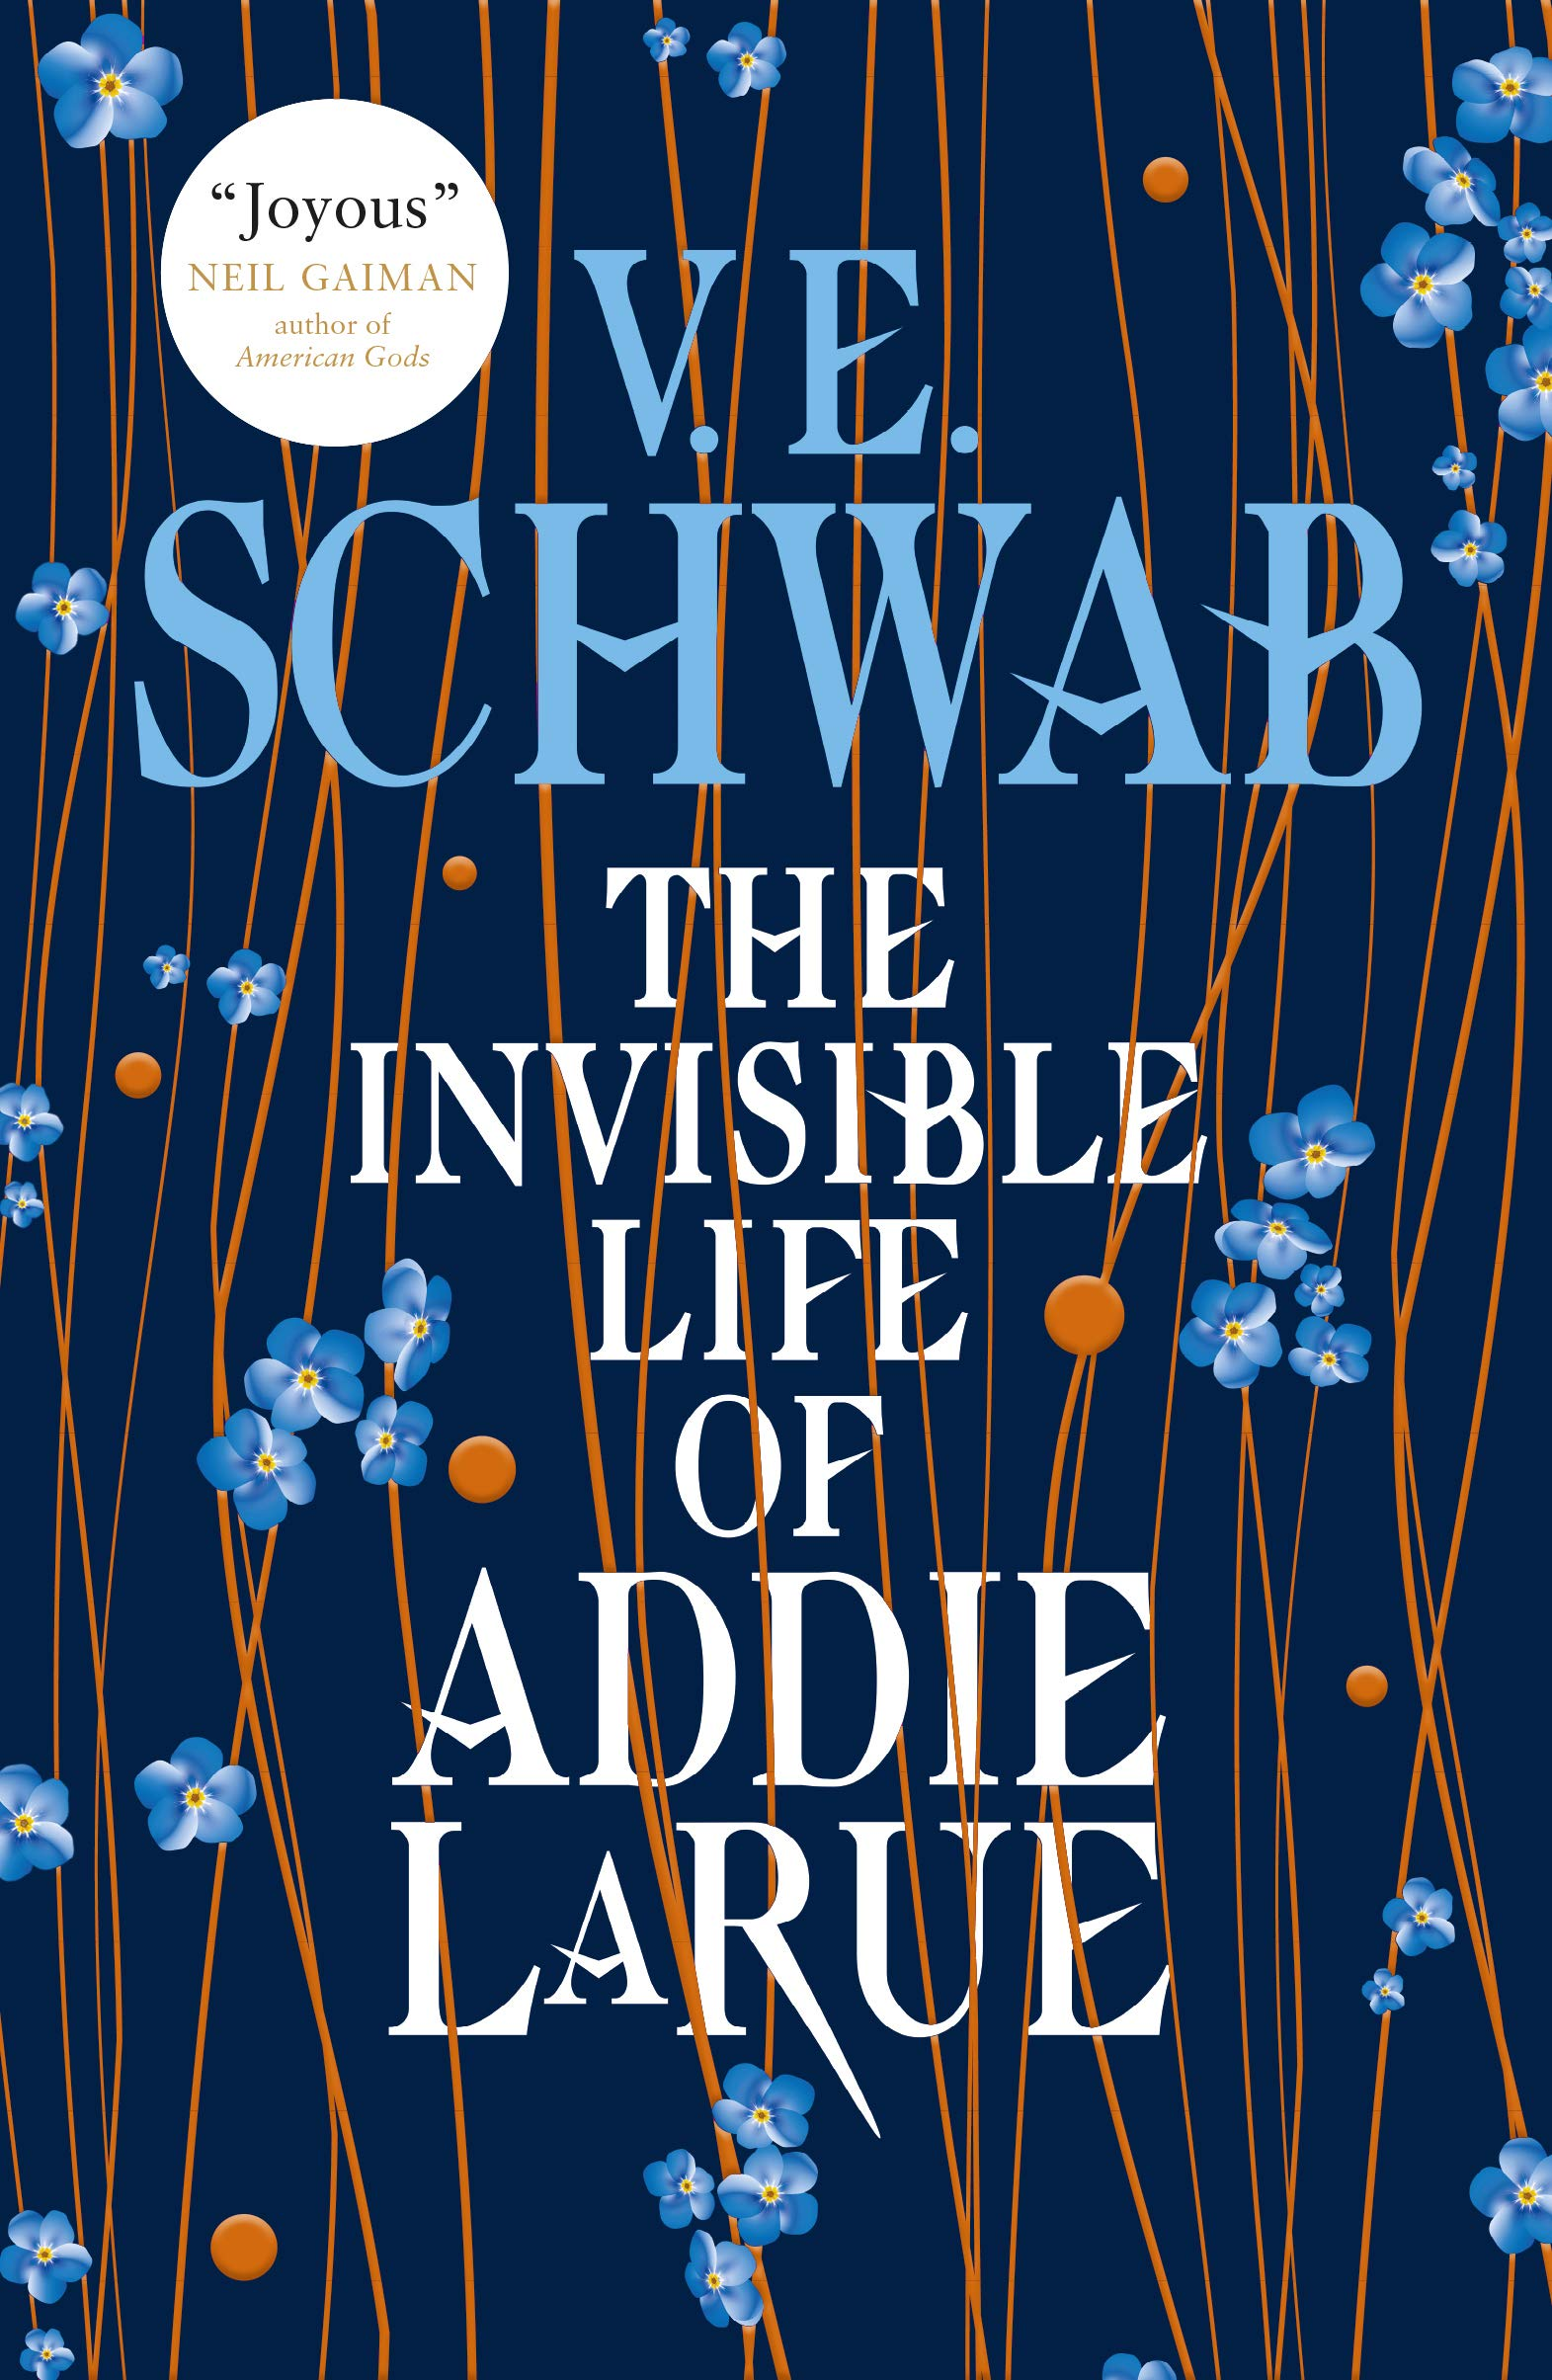 The Invisible Life of Addie LaRue: Amazon.co.uk: V.E. Schwab:  9781785652509: Books